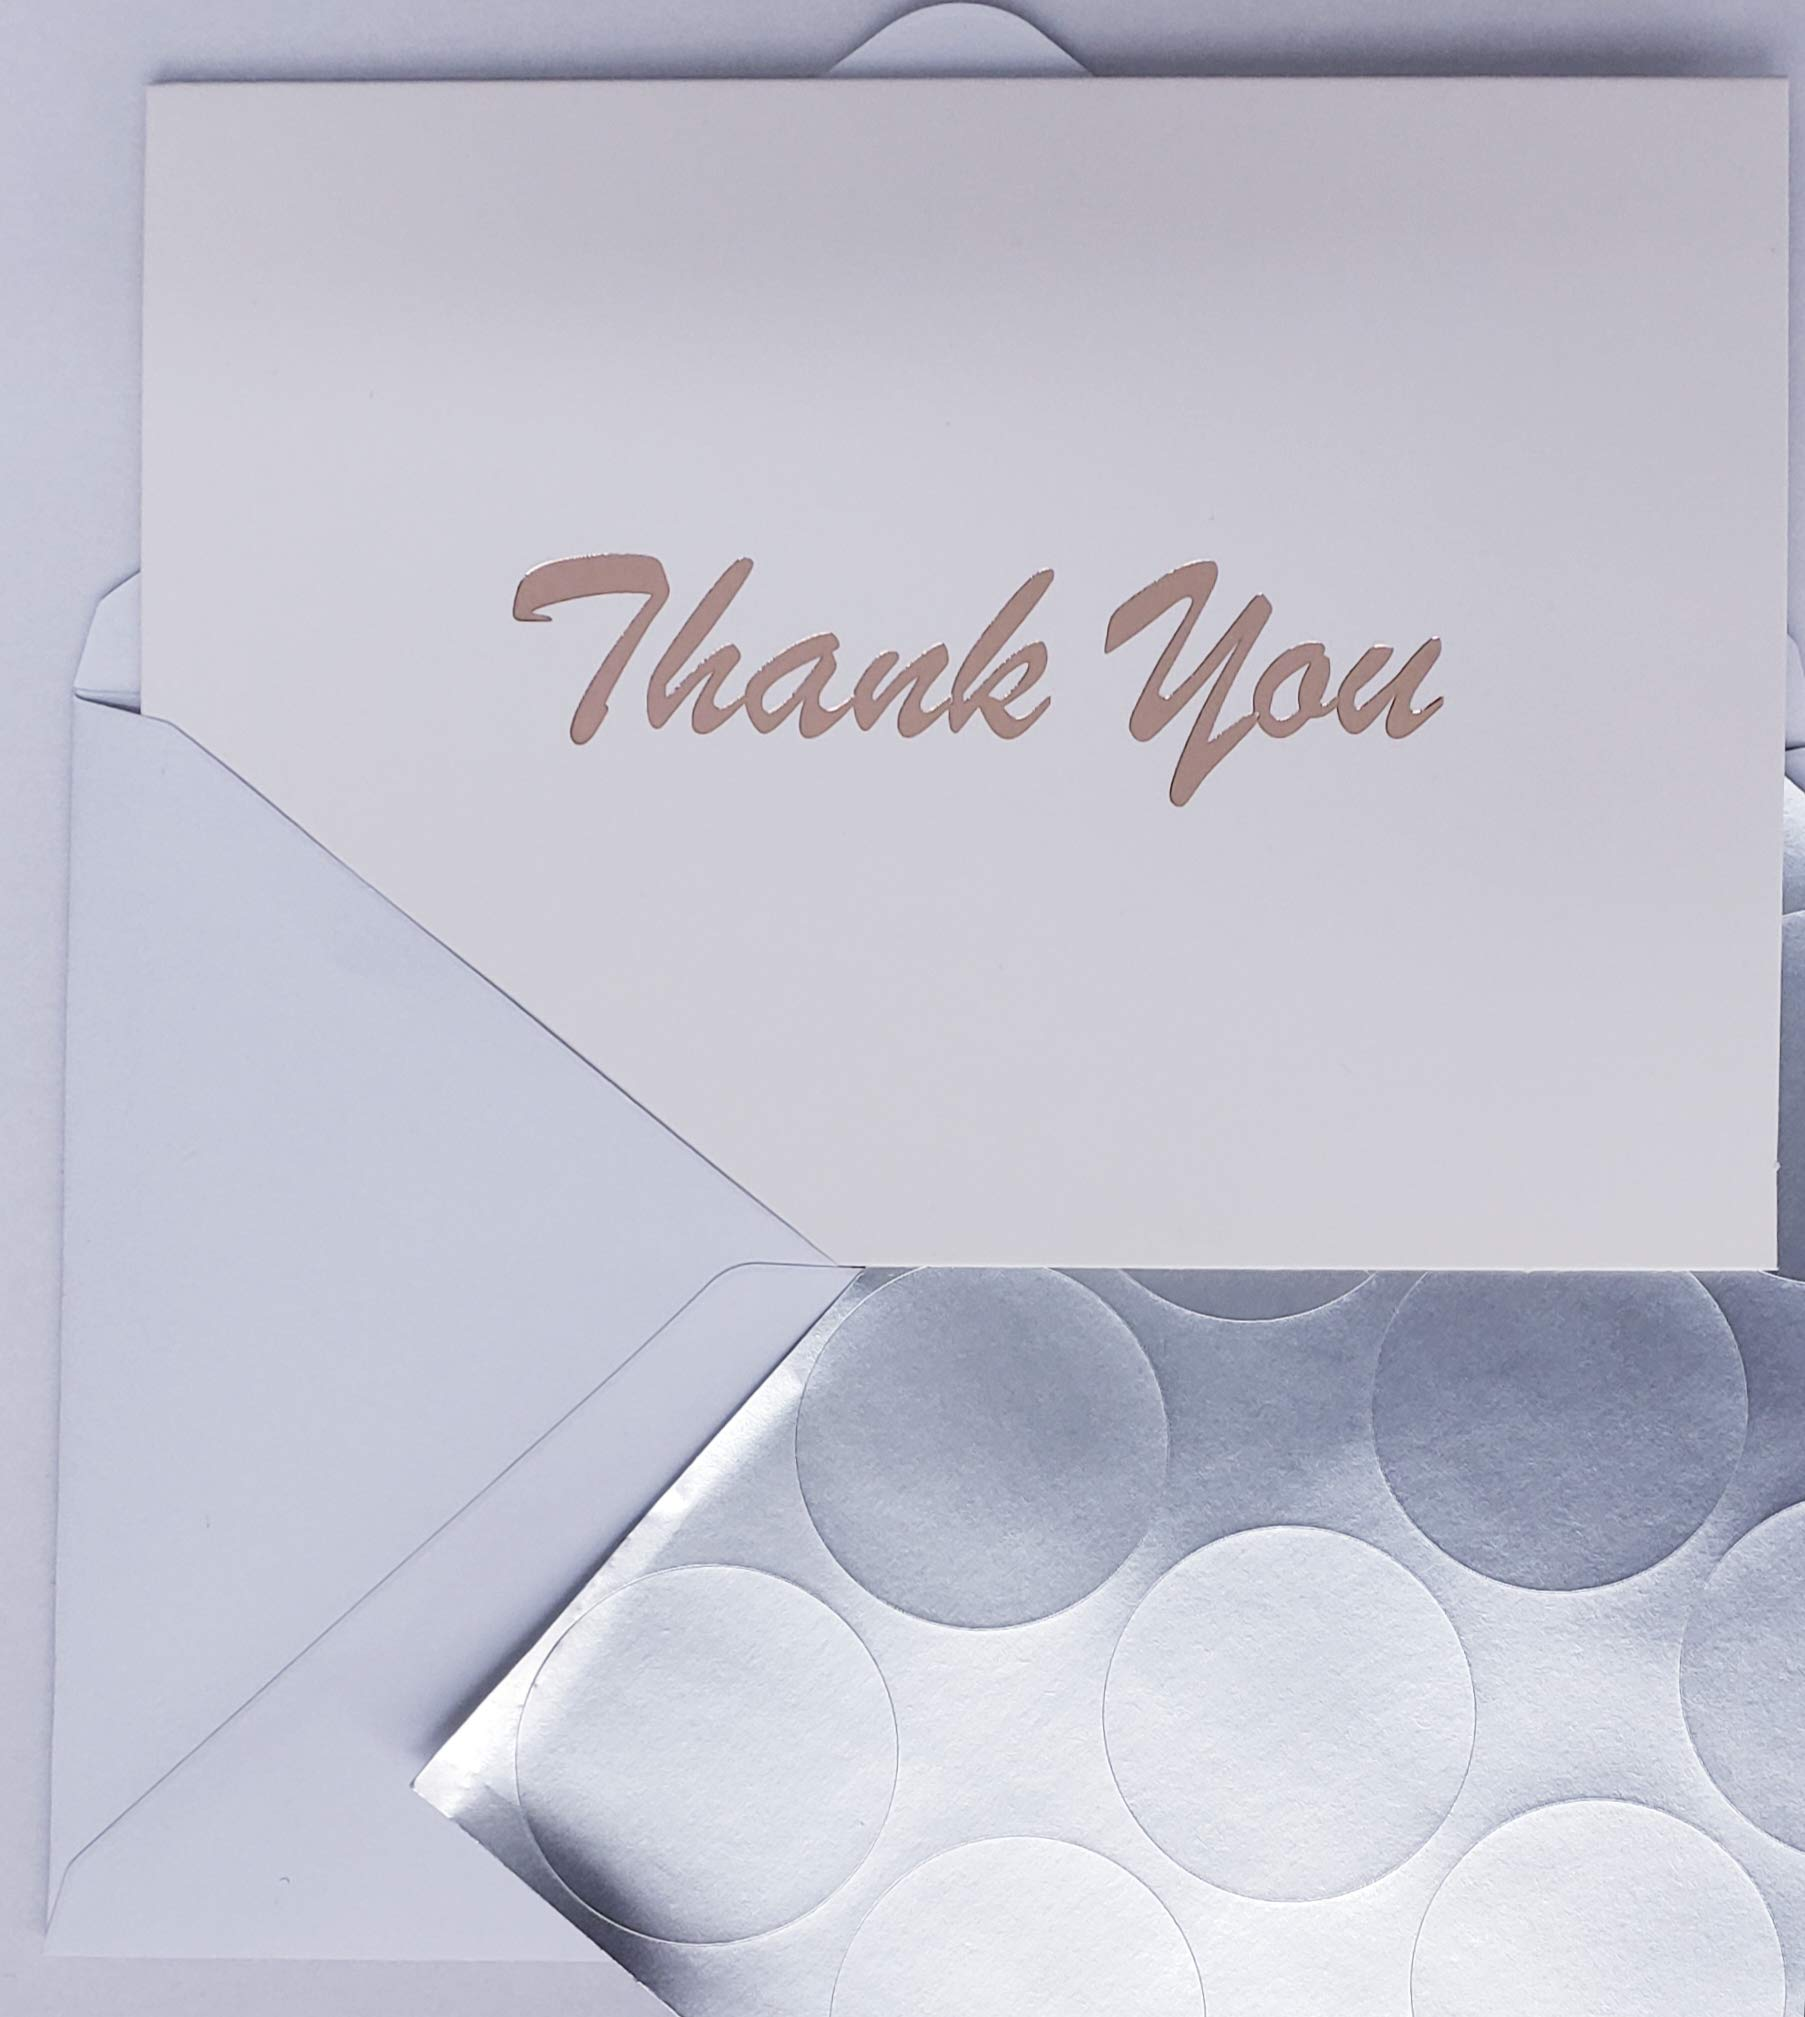 Thank You Cards - 100 Count - White Cards with Rose Gold Foil Text - Blank Inside, Includes Cards, Envelopes, and Seal Stickers; Great for Weddings, Graduation, Baby Shower, Bridal Shower by Little Royal Notes (Image #2)